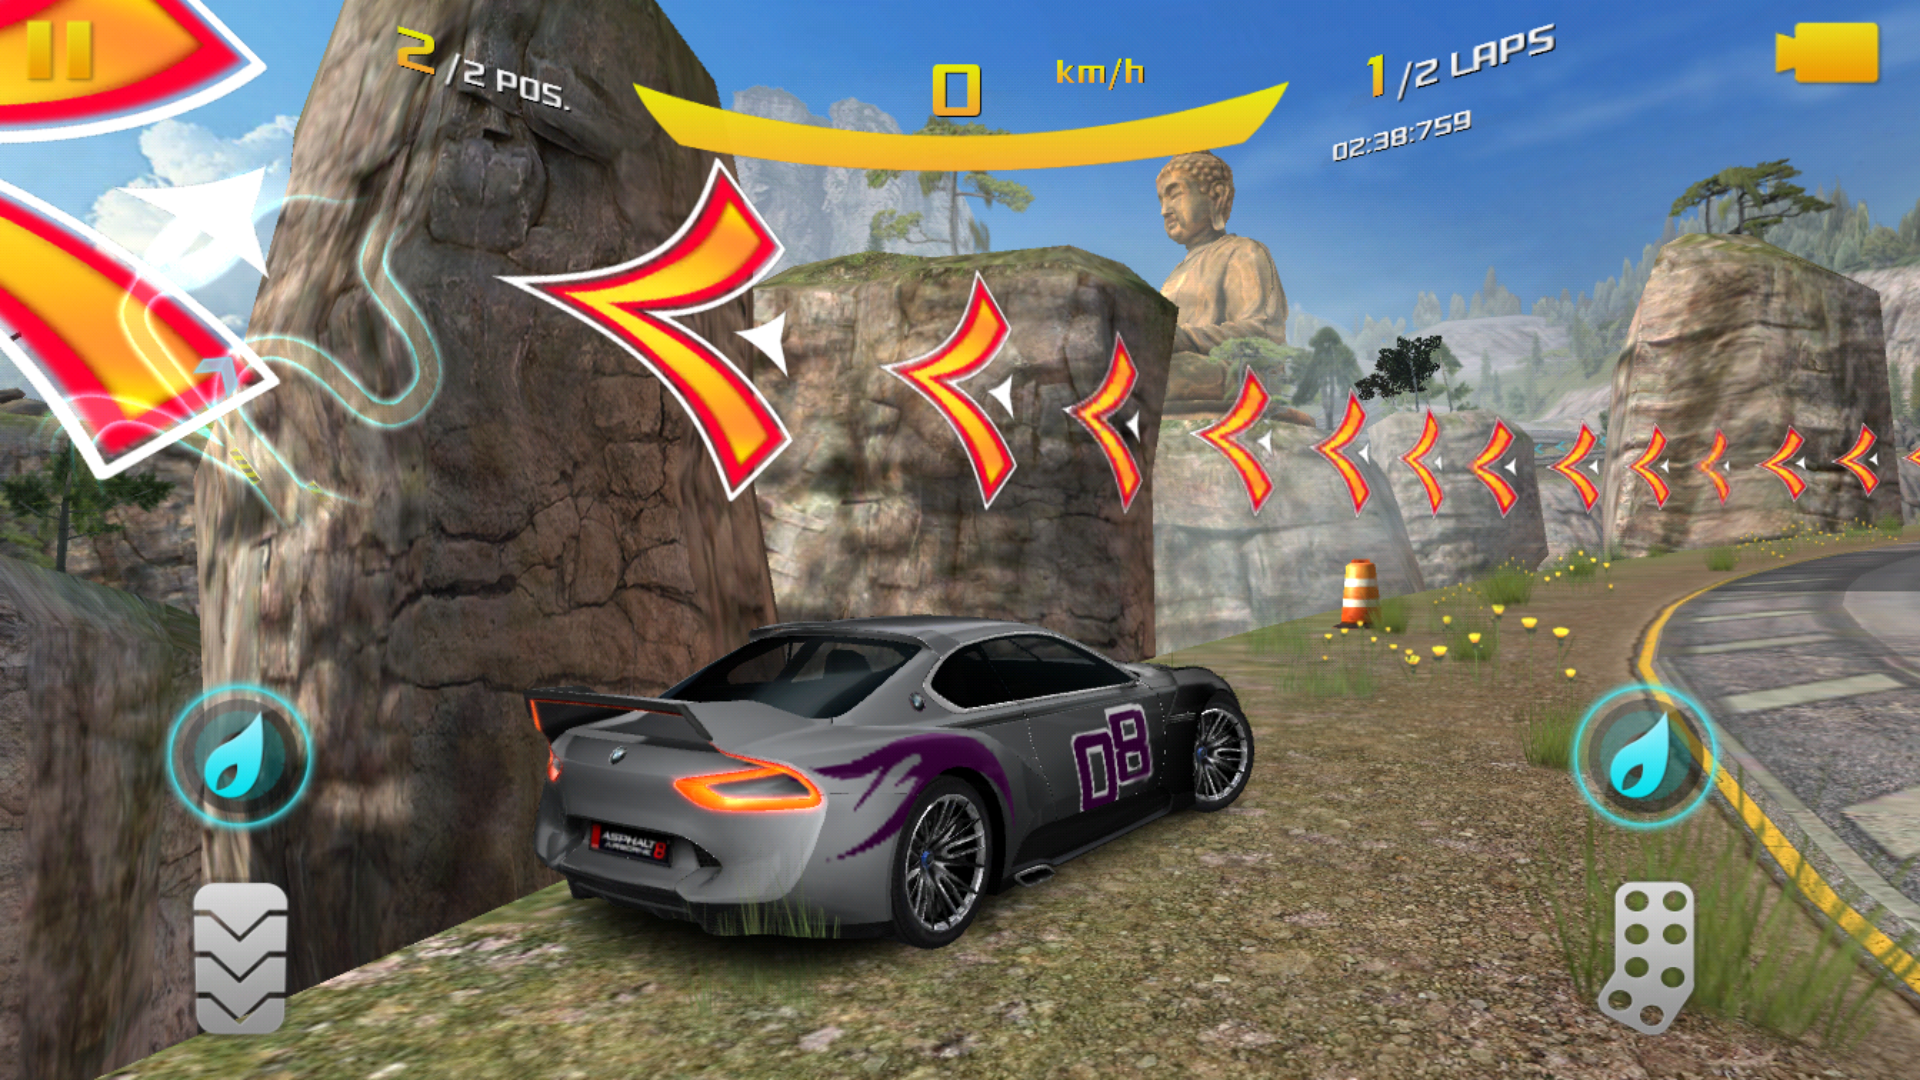 Porsche update asphalt wiki fandom powered by wikia two rock pillars are added to further block the shortcut exploit used in two of the great wall tracks great wall reverse and wall ascent fandeluxe Images